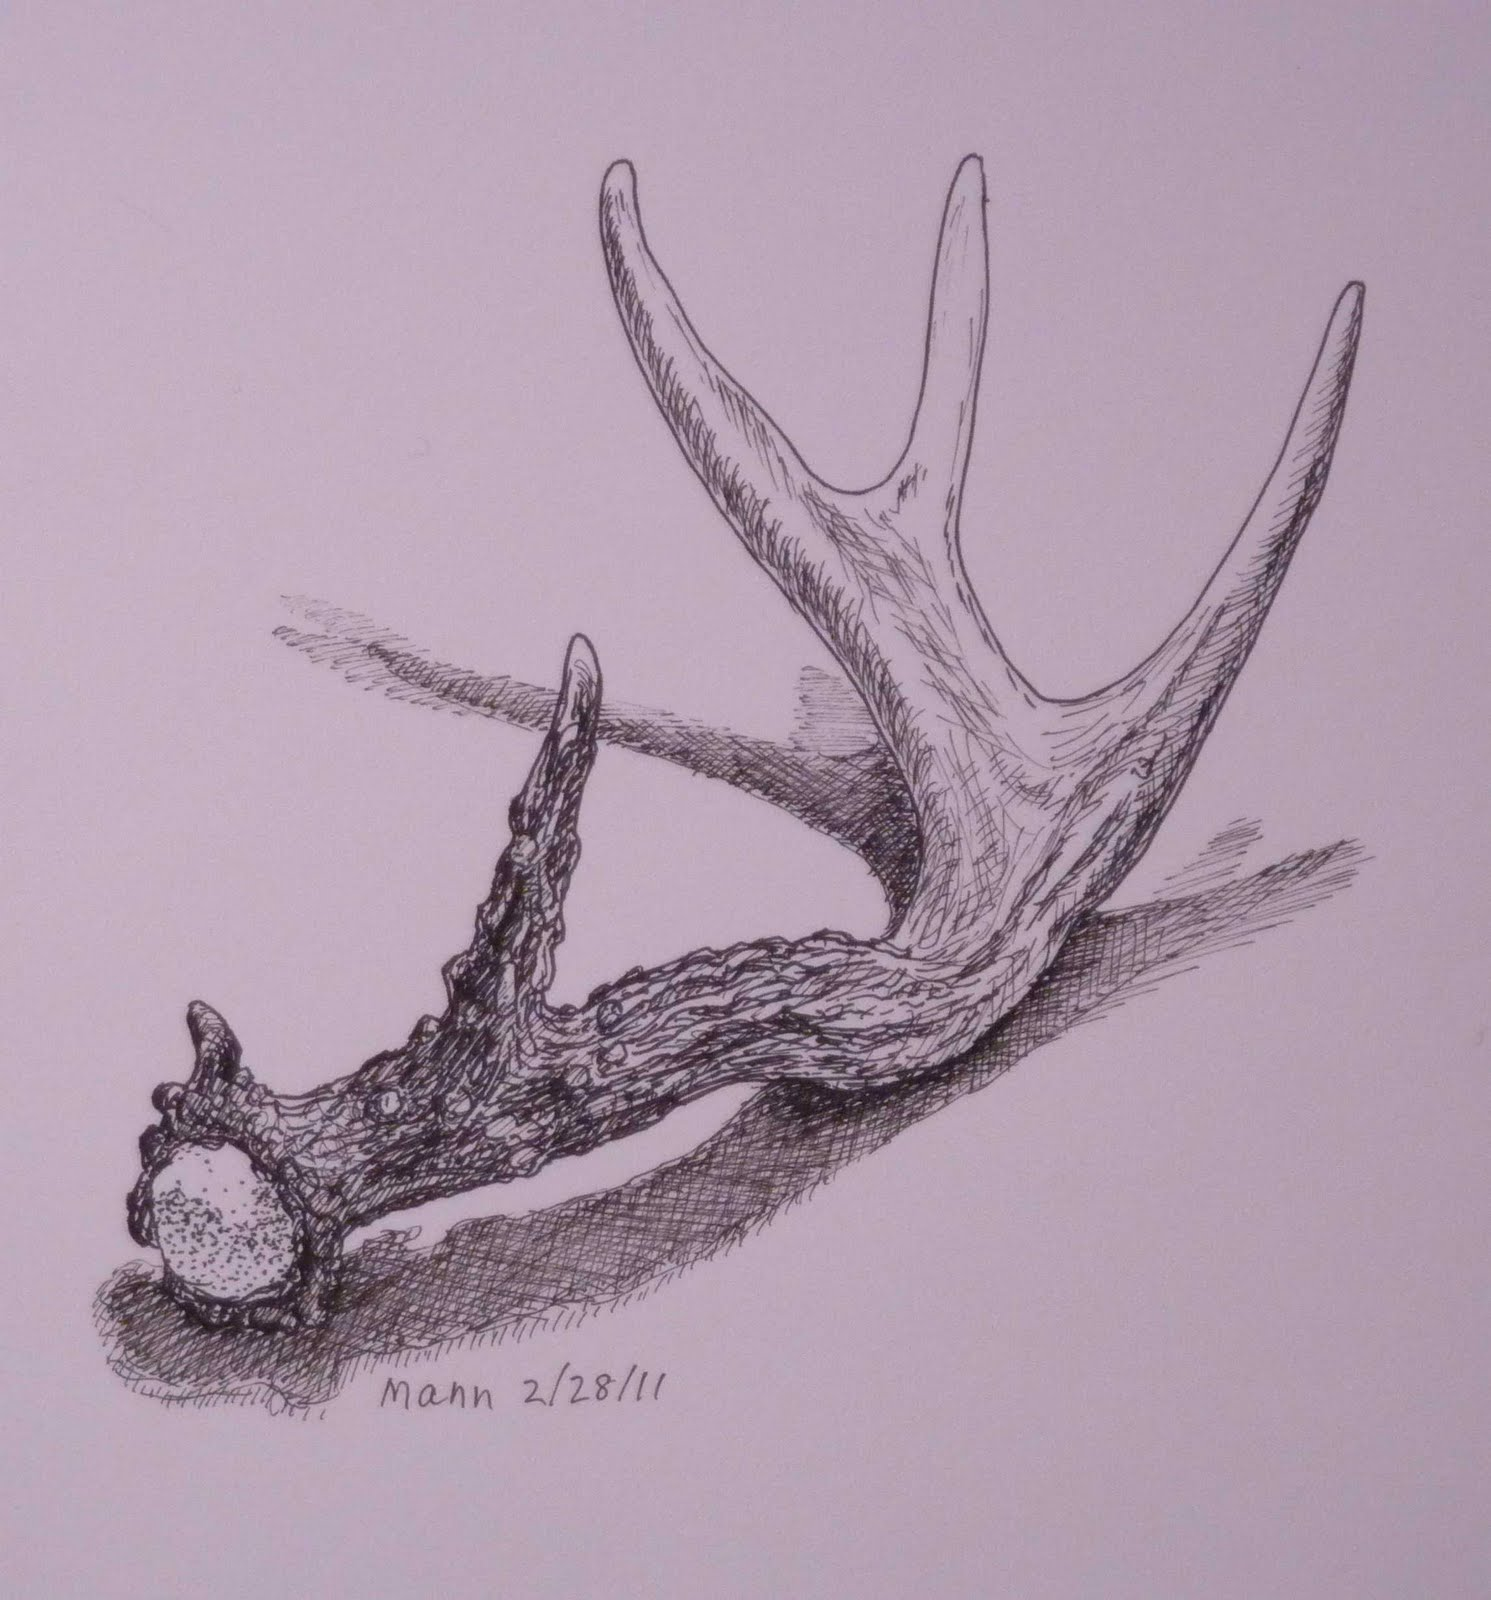 Drawn antler A pencil antler line drawing